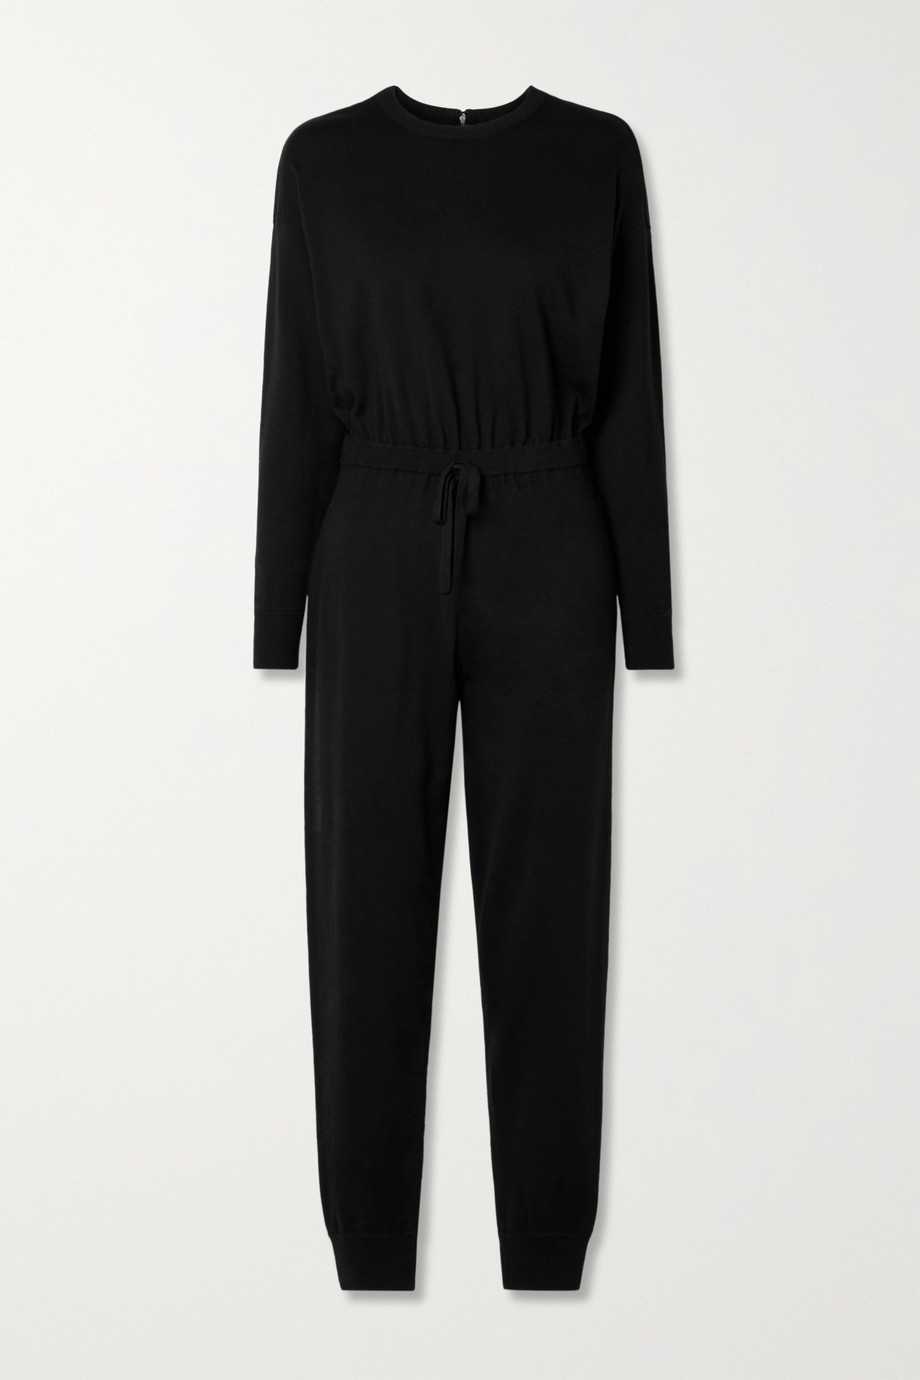 Alice + Olivia Nikita wool-blend jumpsuit